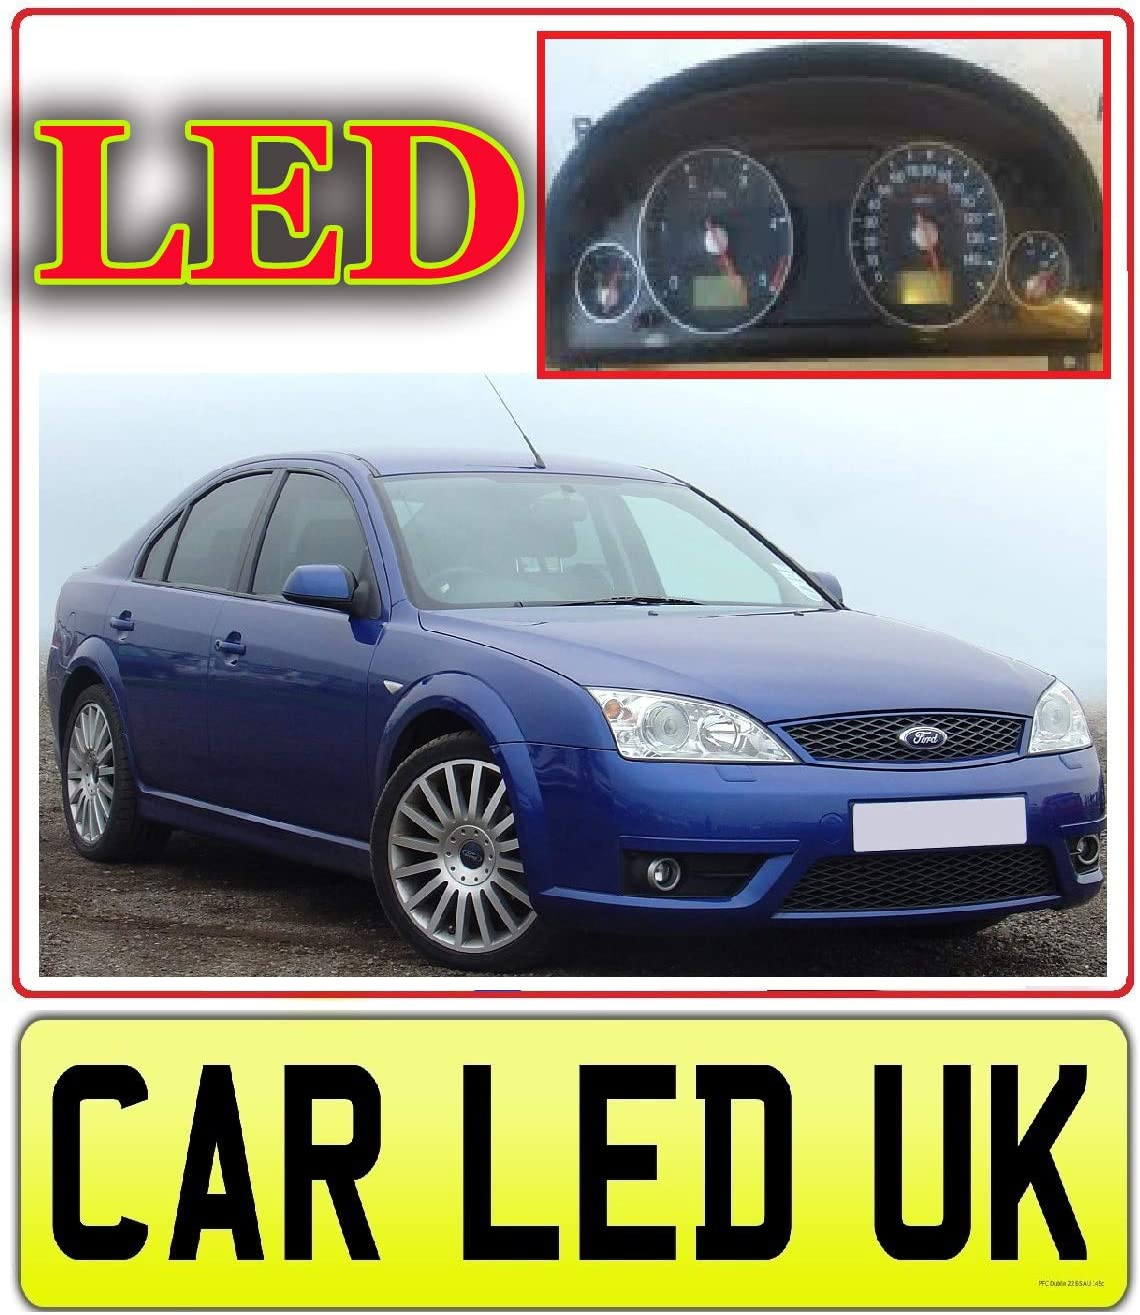 6 x LED Dash//Speedo//Cluster//Dashboard Kit Bulbs  Mondeo Mk3 2000 to 2007 Instrument Cluster LED Upgrade Green